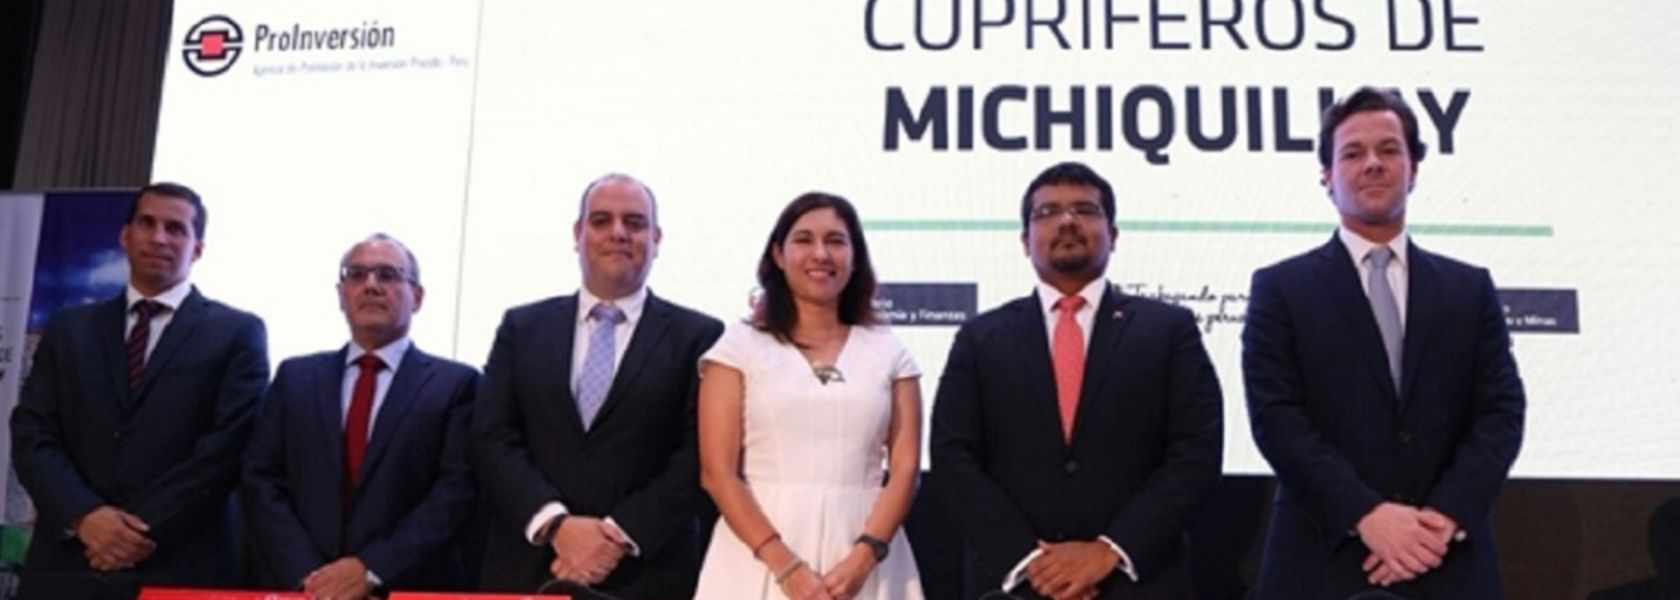 Southern Copper wins Michiquillay with US$400m bid